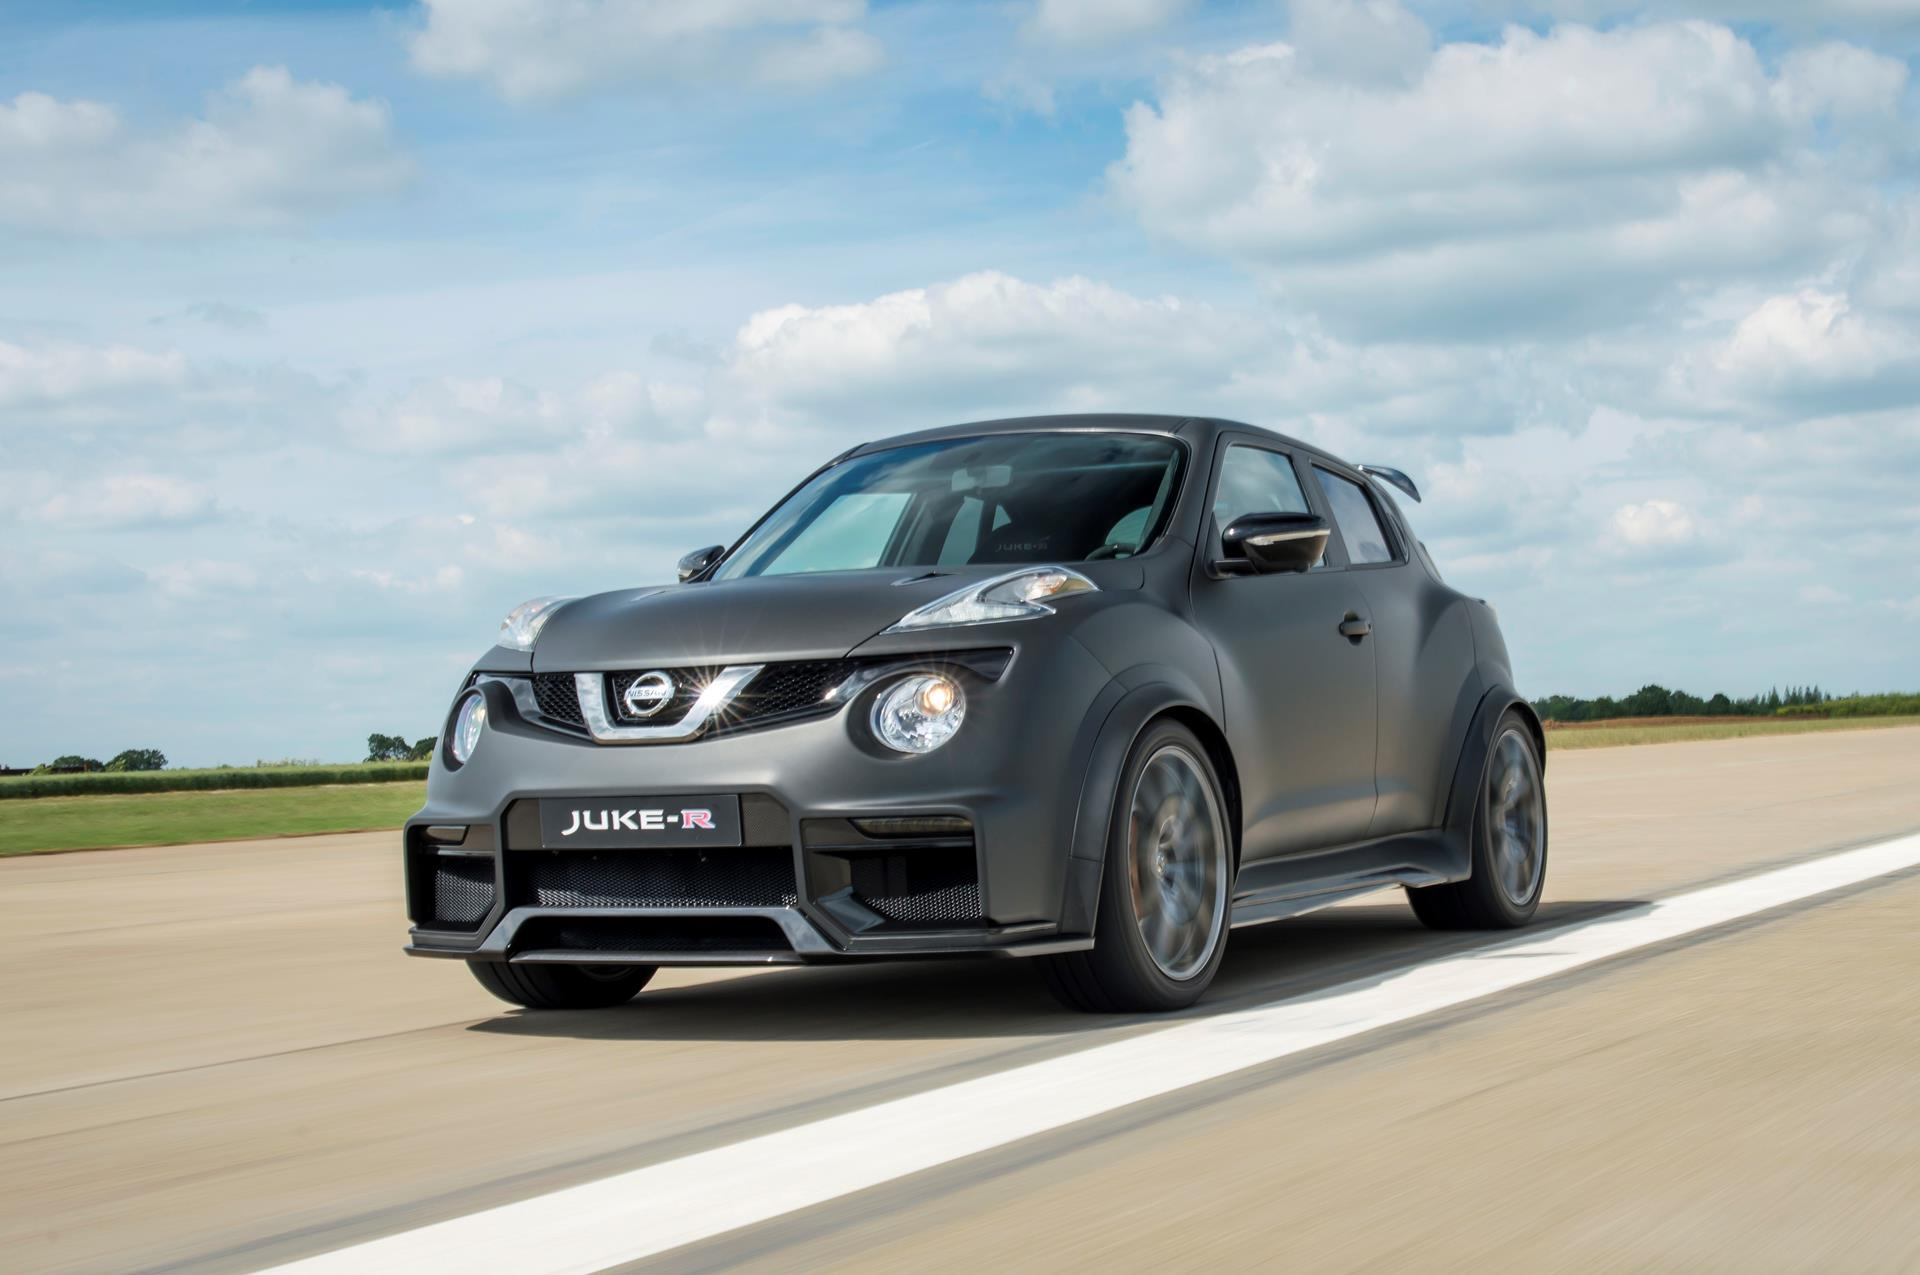 2016 nissan juke r 2 0 news and information for Nissan juke einparkhilfe